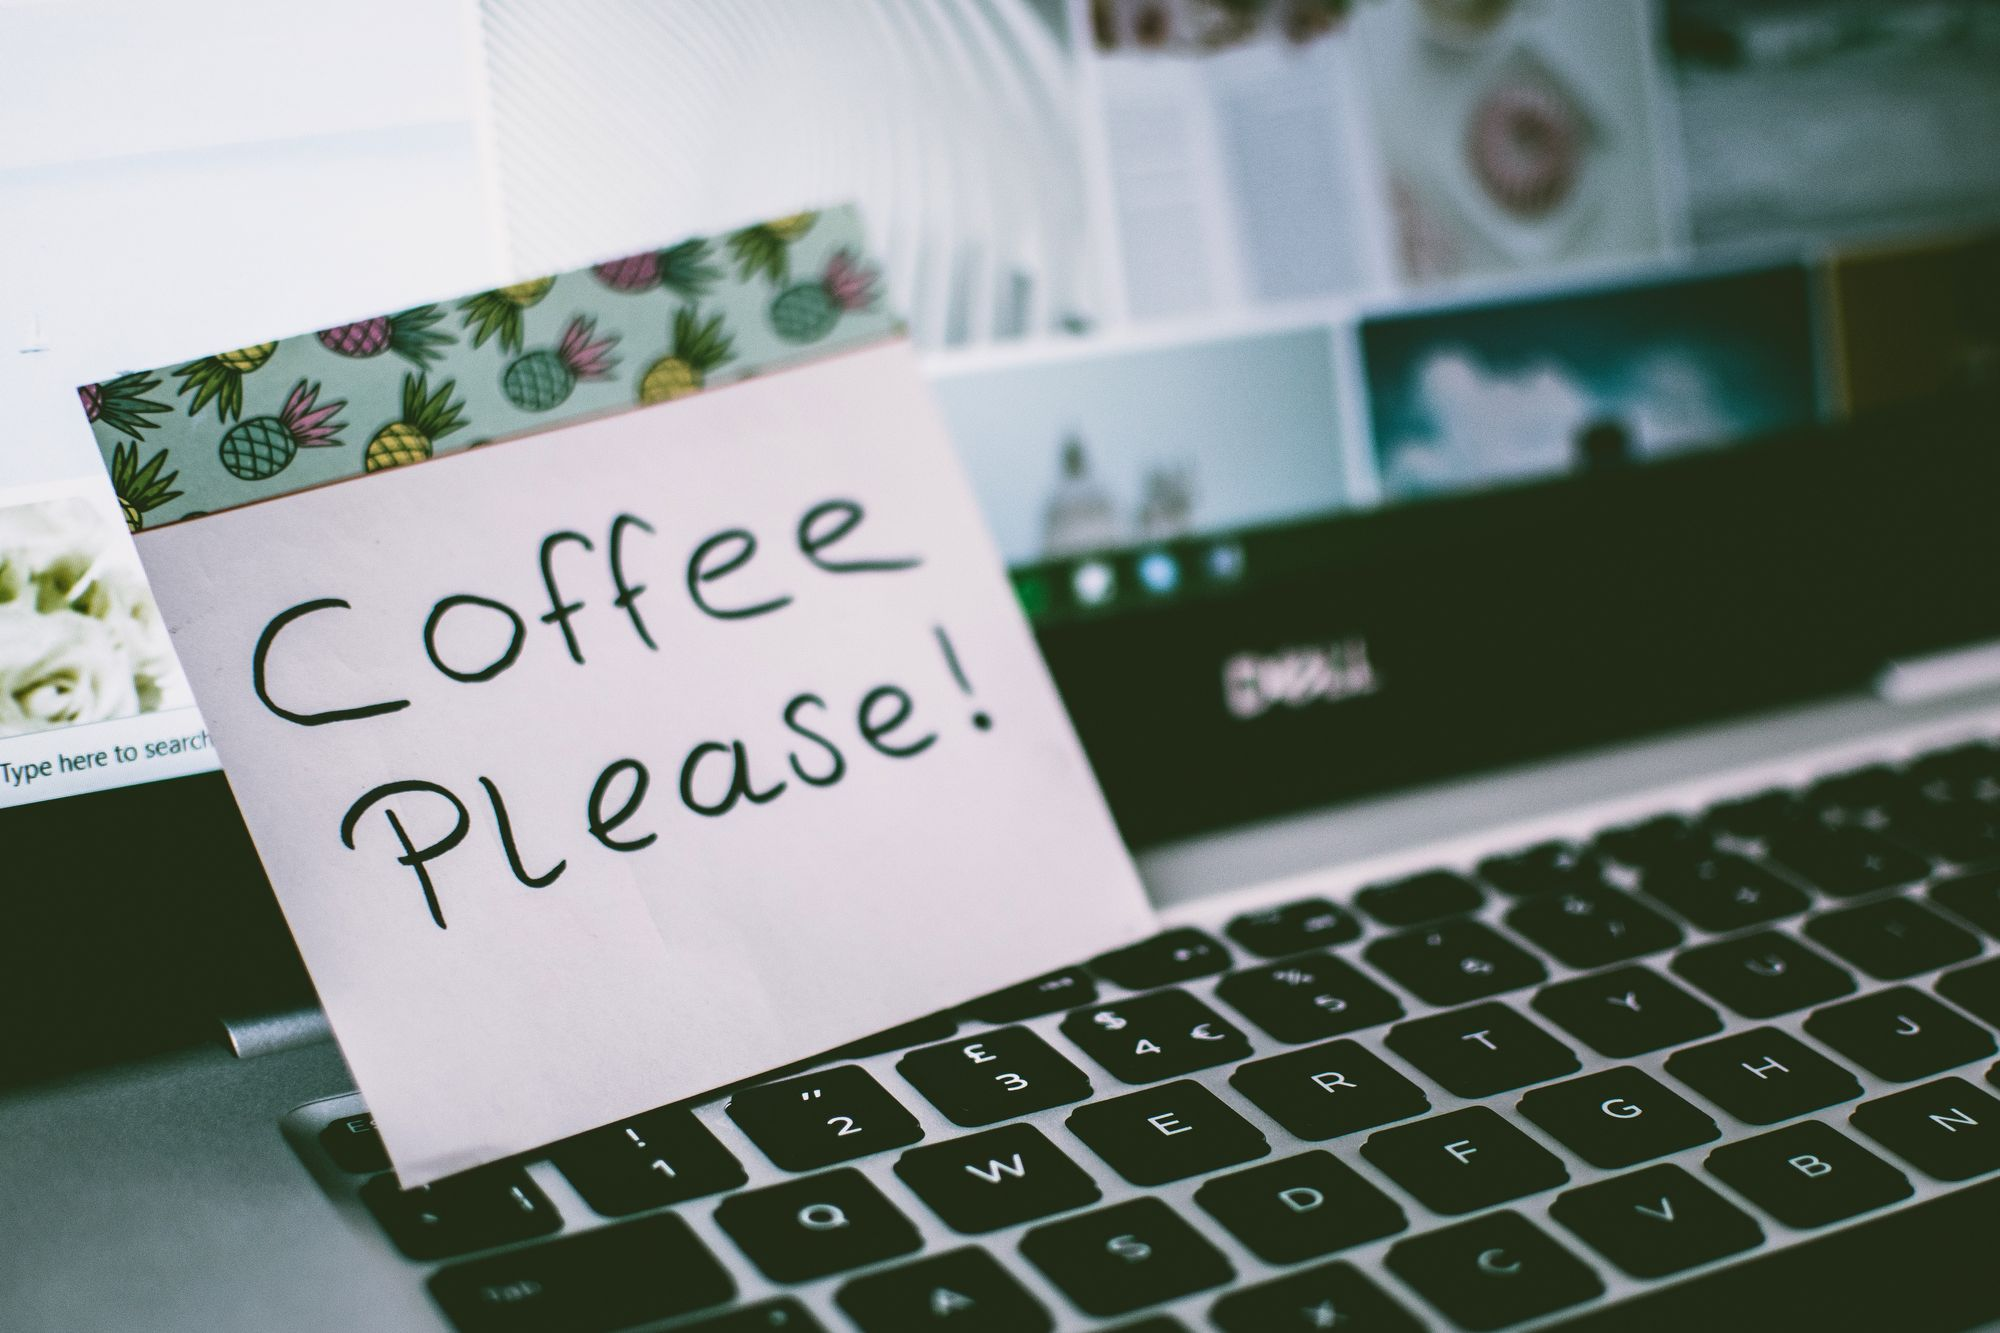 coffee-please-memo-pad-1096947